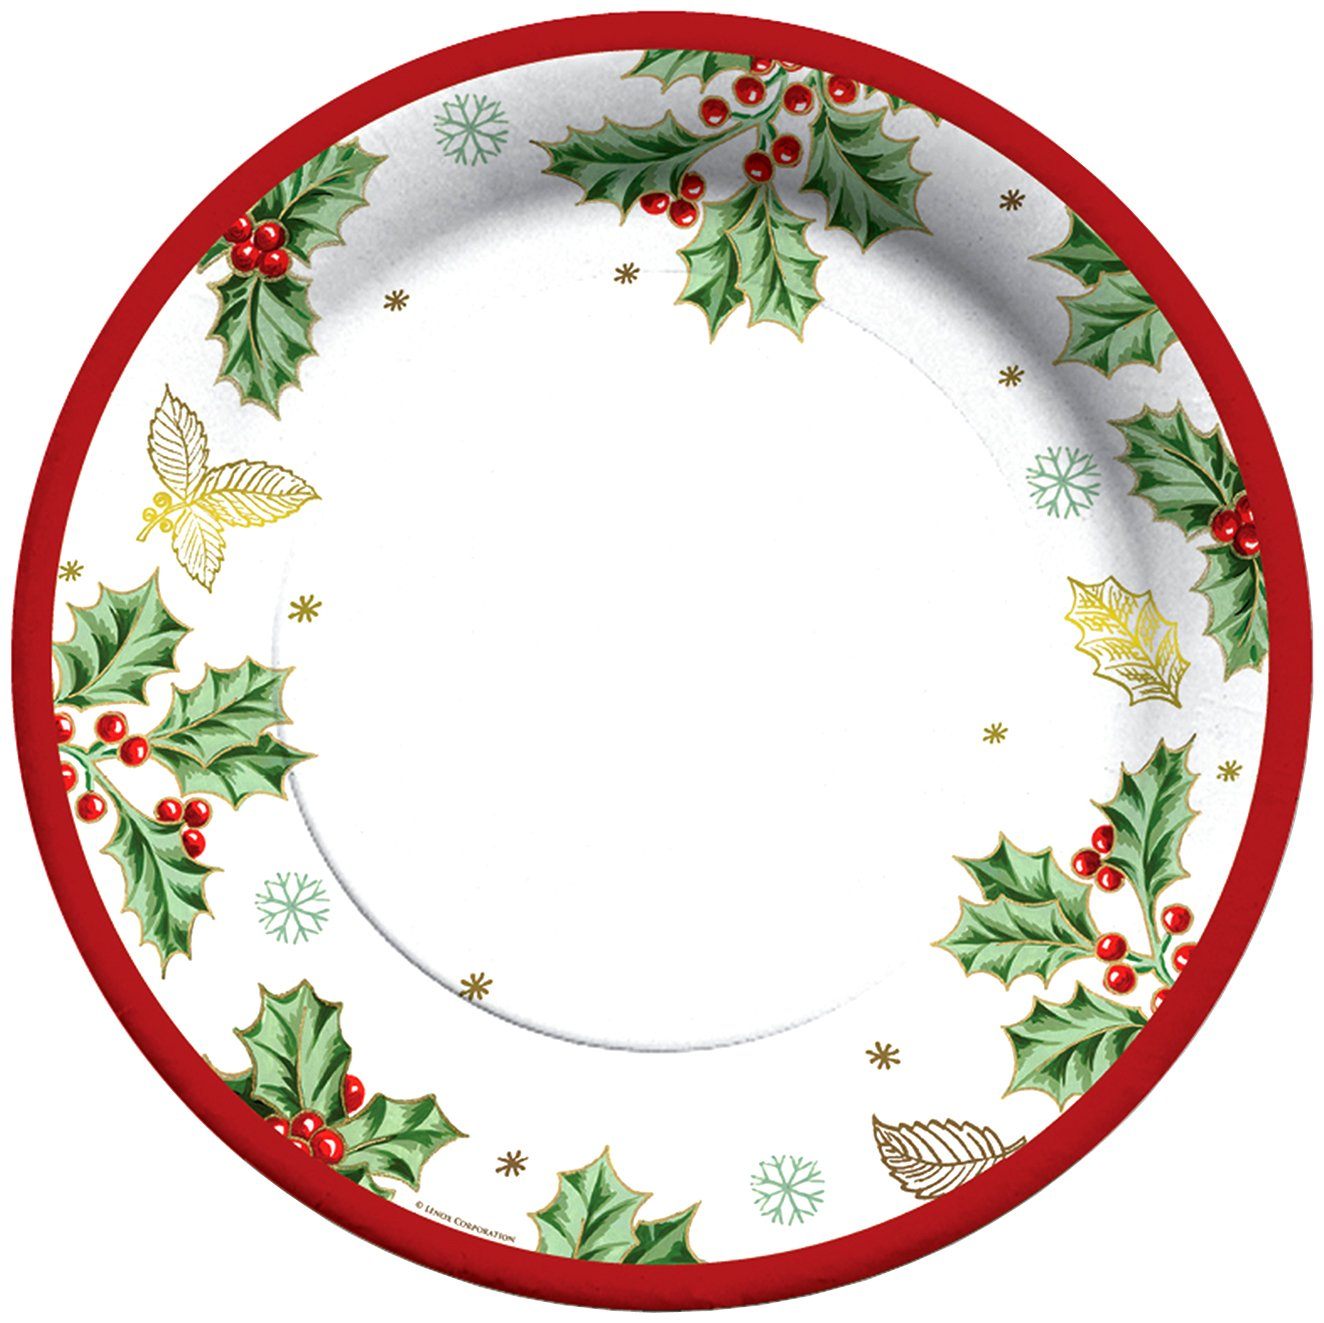 Amazon.com C.R. Gibson 8 Count Decorative Paper Dinner Plates By Lenox Easy Clean Up Measures 10.5  - Treasured Traditions Kitchen u0026 Dining  sc 1 st  Amazon.com & Amazon.com: C.R. Gibson 8 Count Decorative Paper Dinner Plates By ...